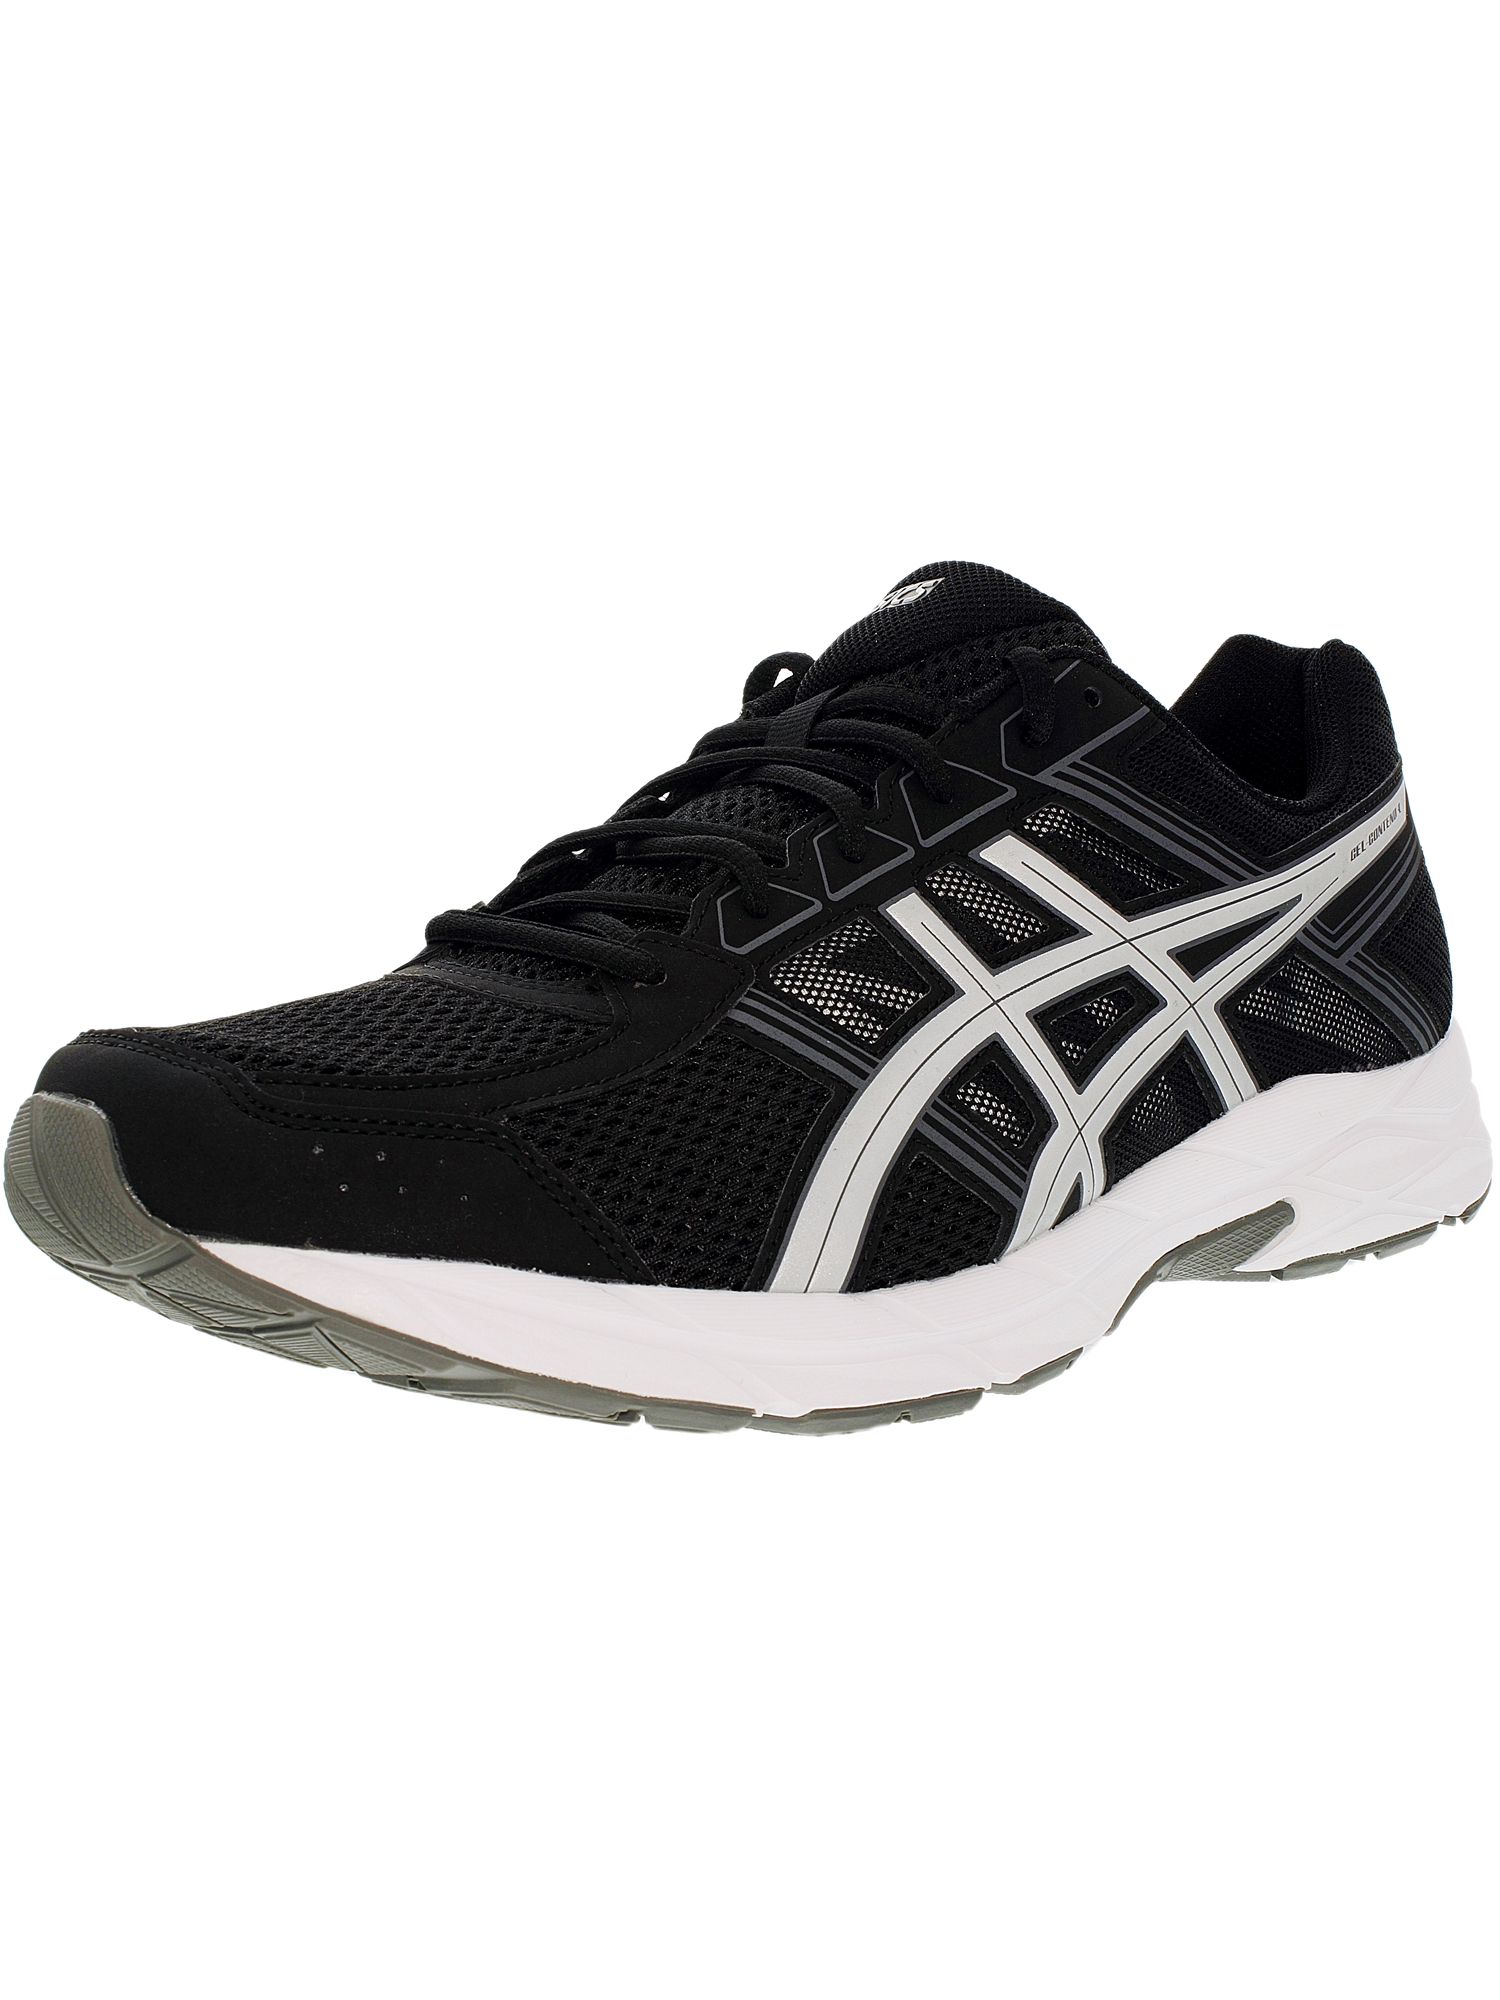 ASICS Asics Men's Gel Contend 4 BlackSilverCarbon Ankle High Running Shoe 13W